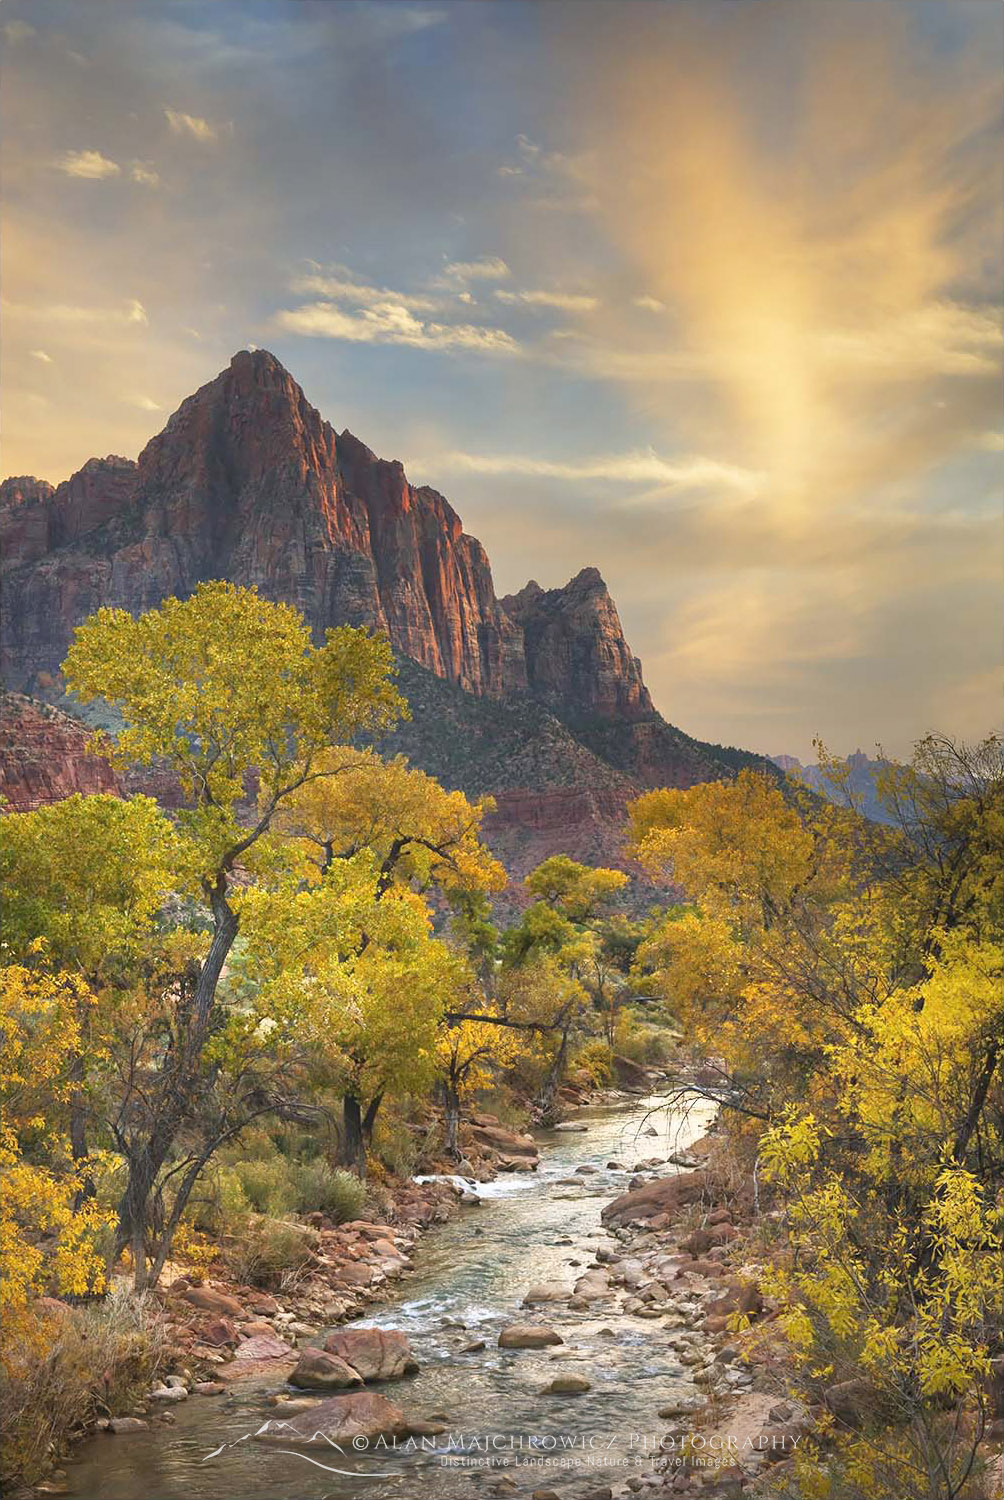 Autumn along the Virgin River, The Watchman in the distance, Zion National Park Utah